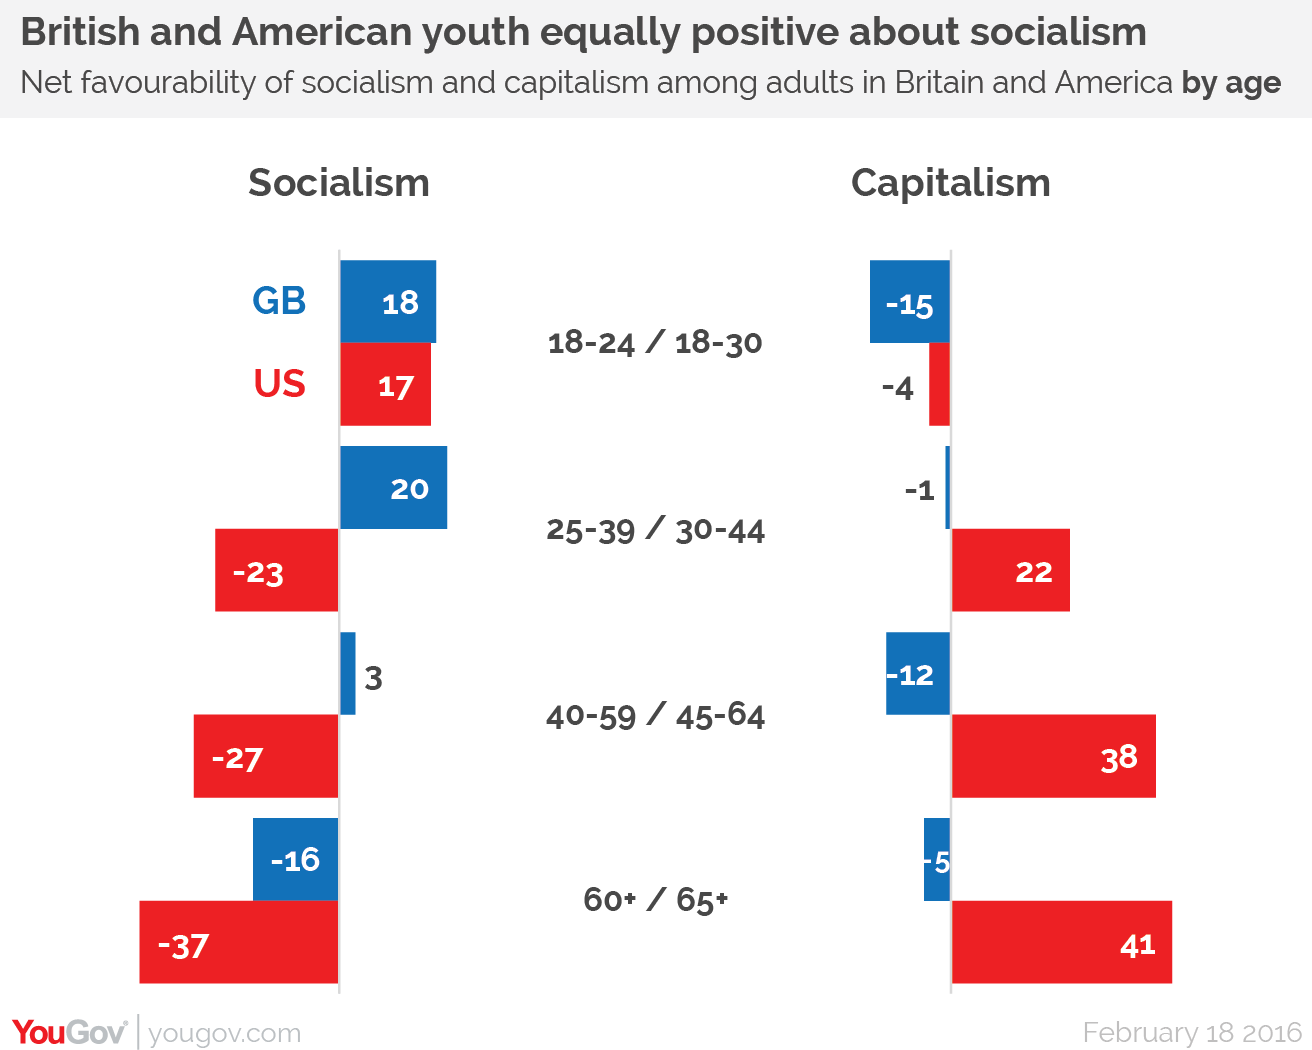 yougov british people keener on socialism than capitalism british people are more likely to view socialism favourably than capitalism